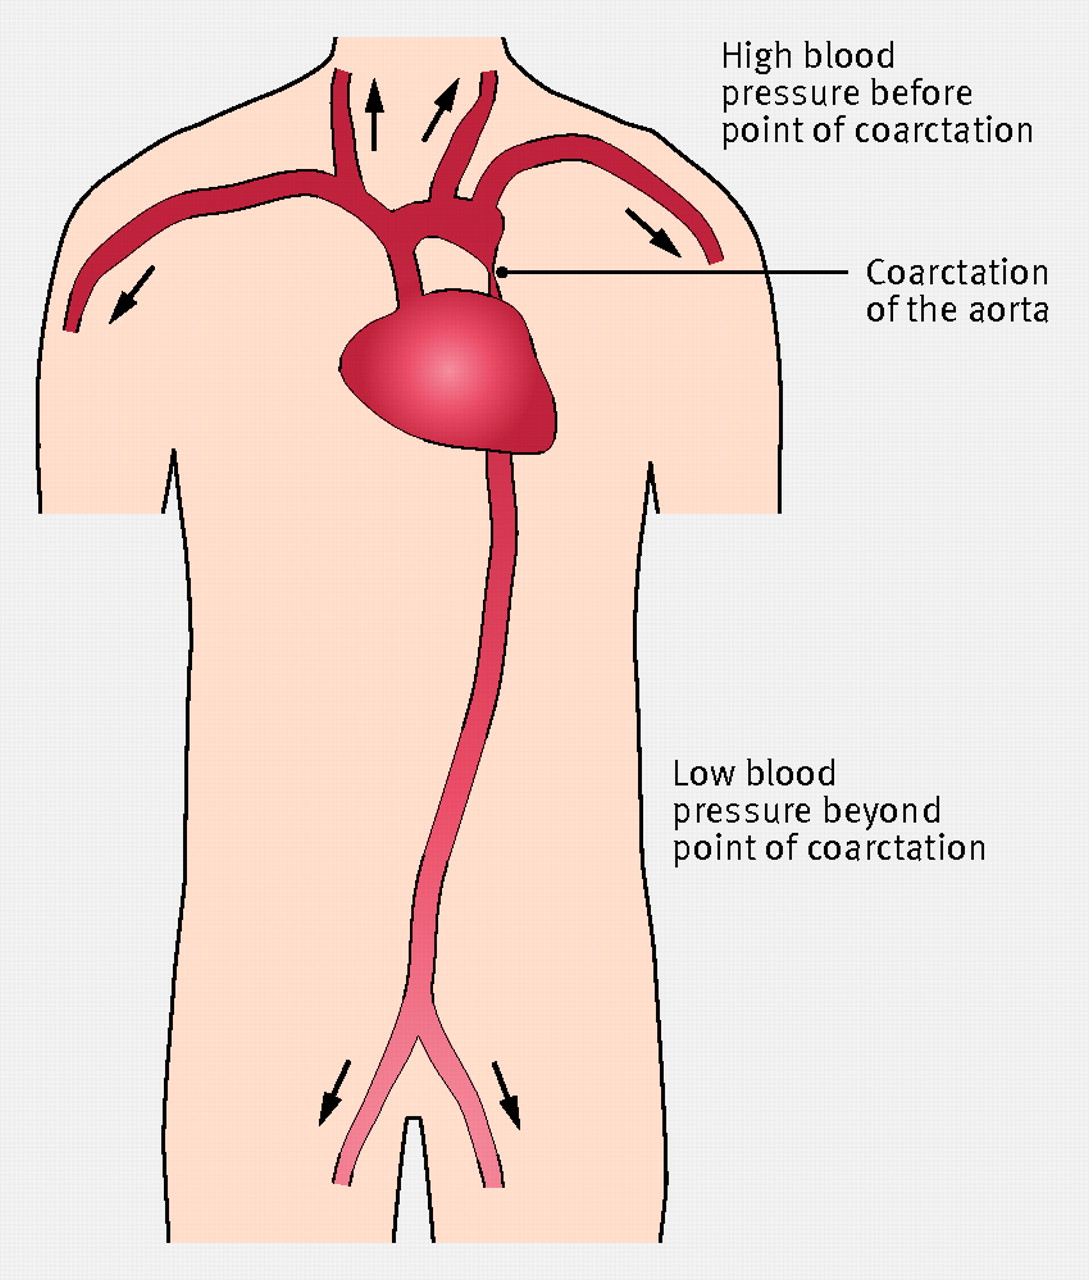 Coarctation Of The Aorta In The Newborn The Bmj